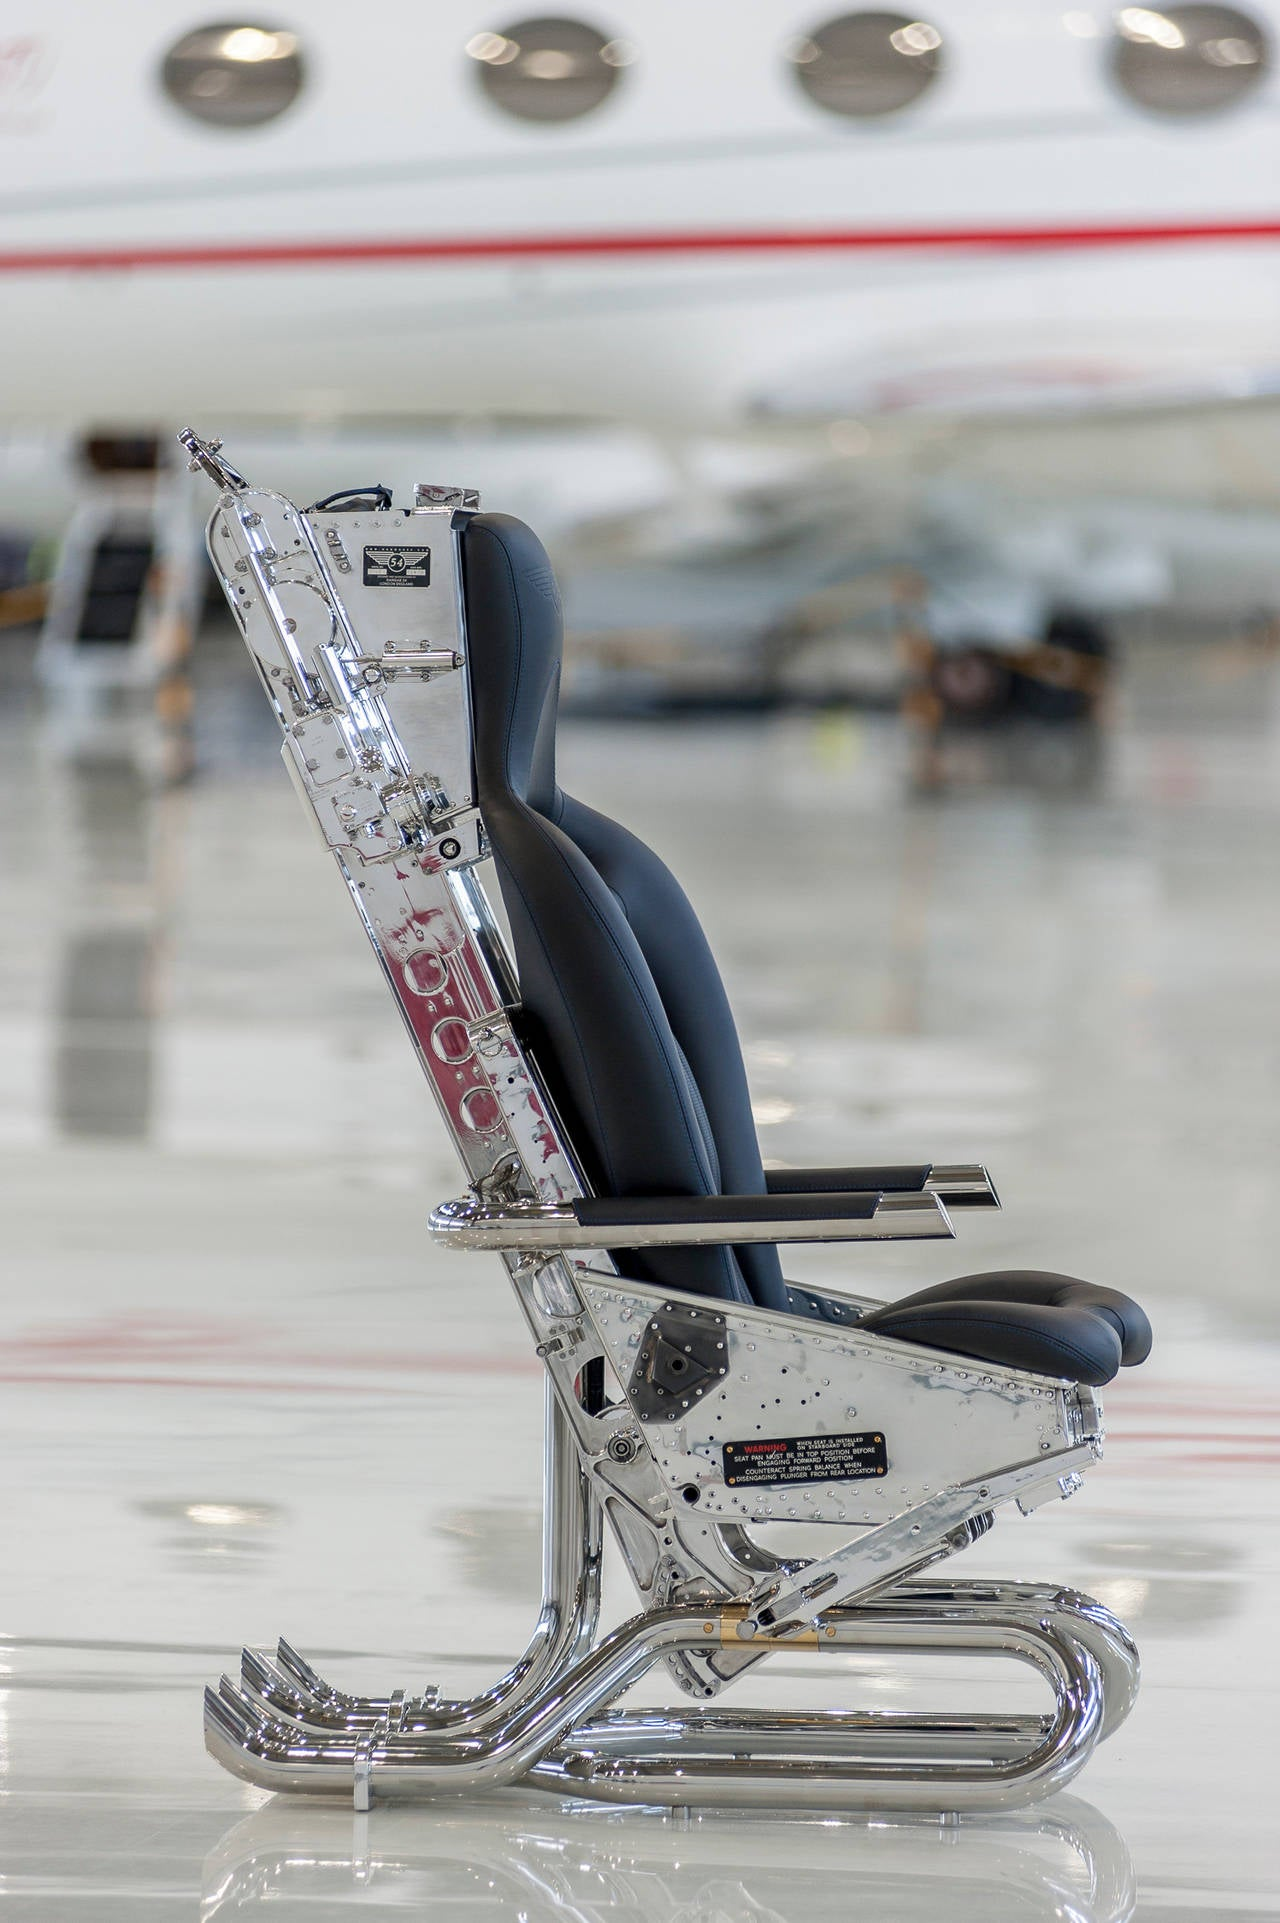 ejection seat office chair small kitchen table and chairs target martin baker mk3 black edition for